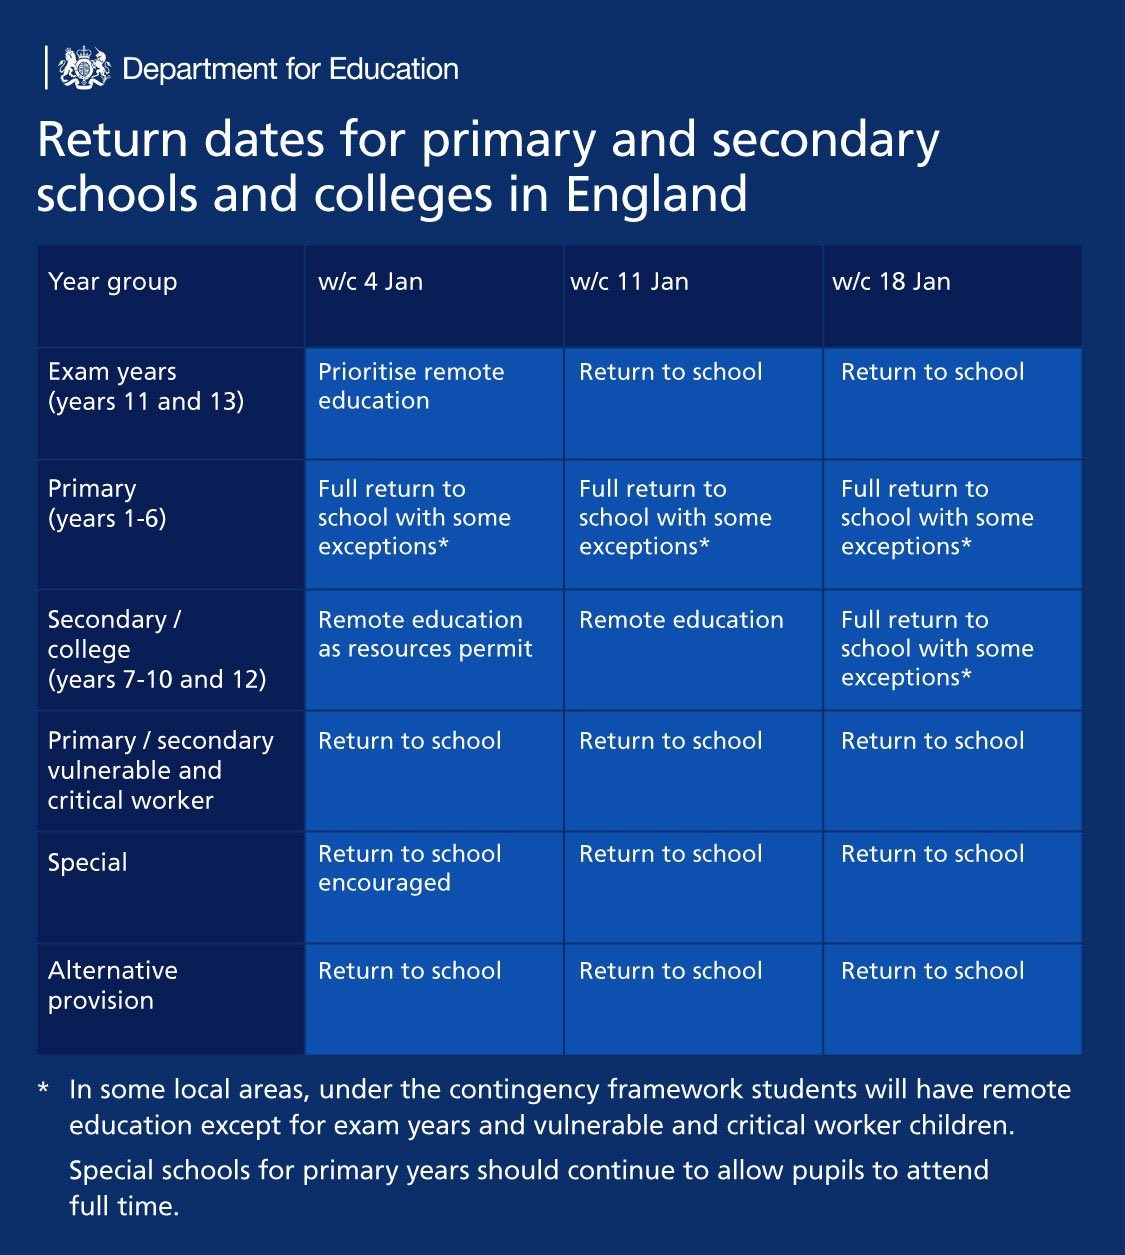 Mary Astell Academy will Re-open on 5th January